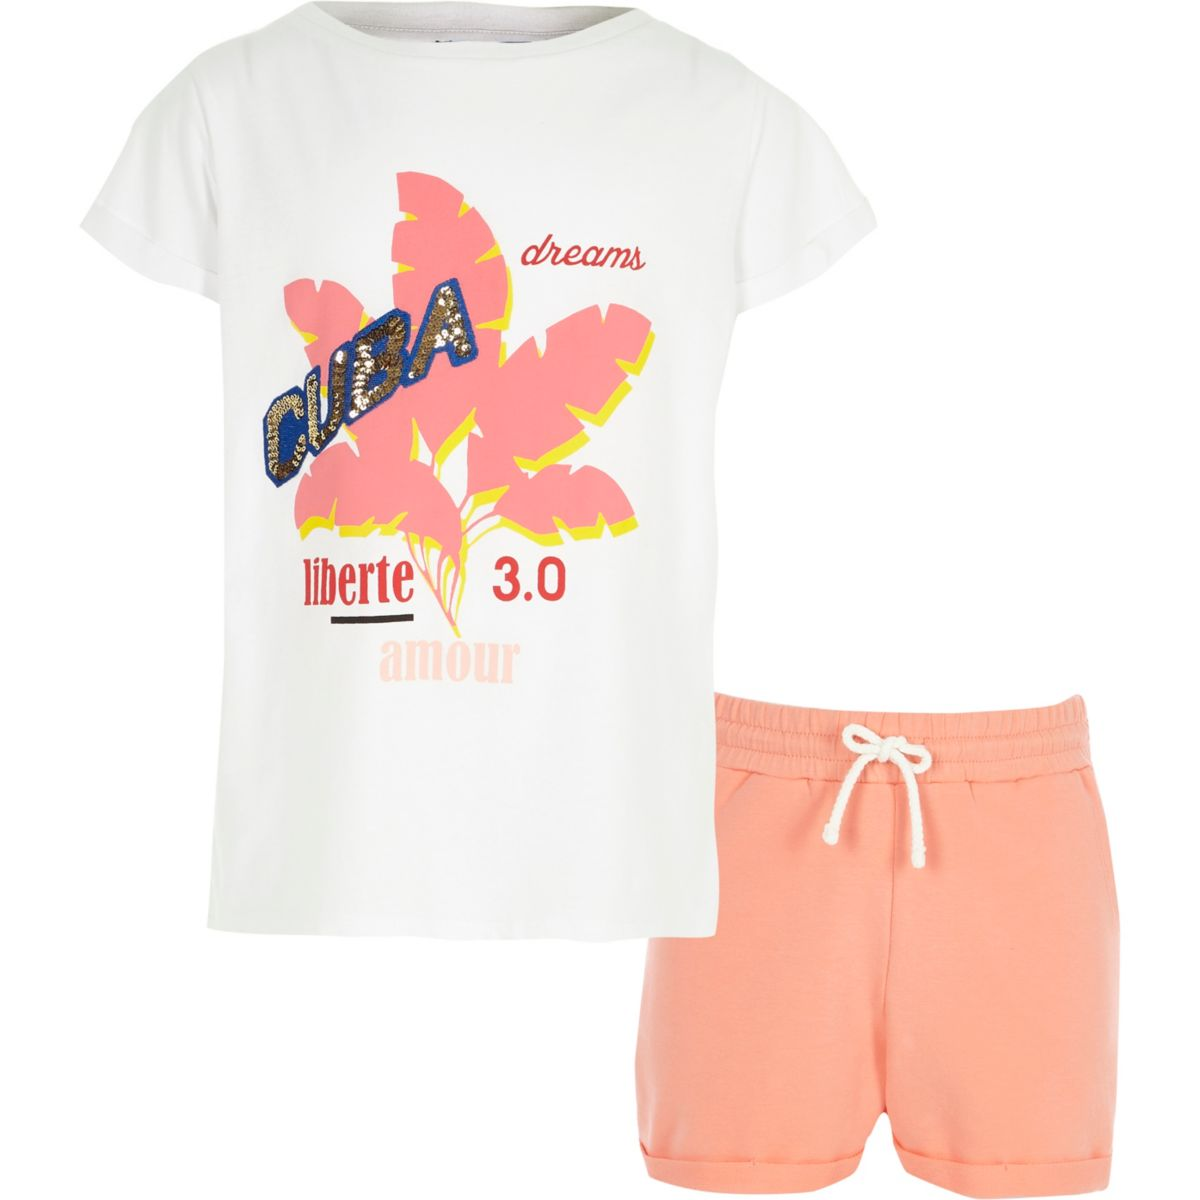 Girls white 'Cuba' T-shirt and shorts outfit